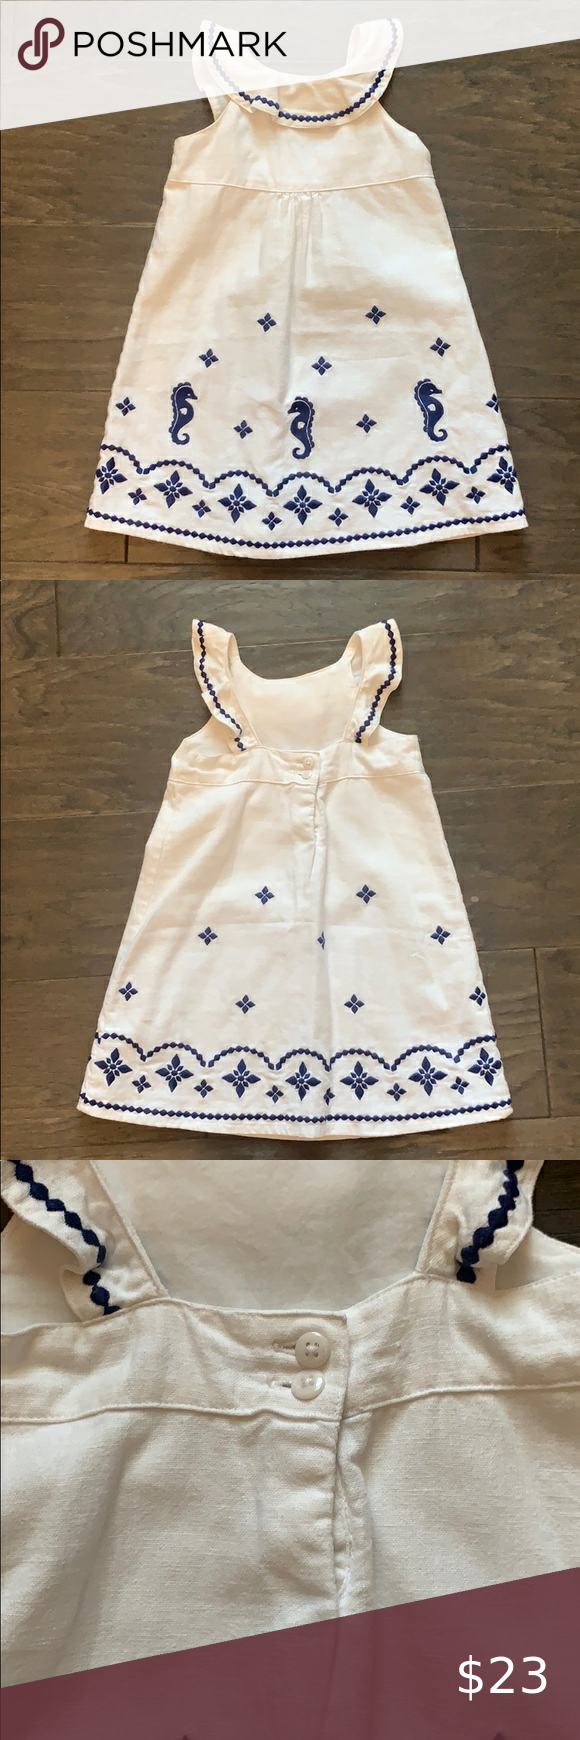 Gymboree White Summer Dress Size 3t Adorable For Summer And Great Quality Dress Size 3t It S A Linen Cotton White Dress Summer Summer Dresses Seahorse Dress [ 1740 x 580 Pixel ]